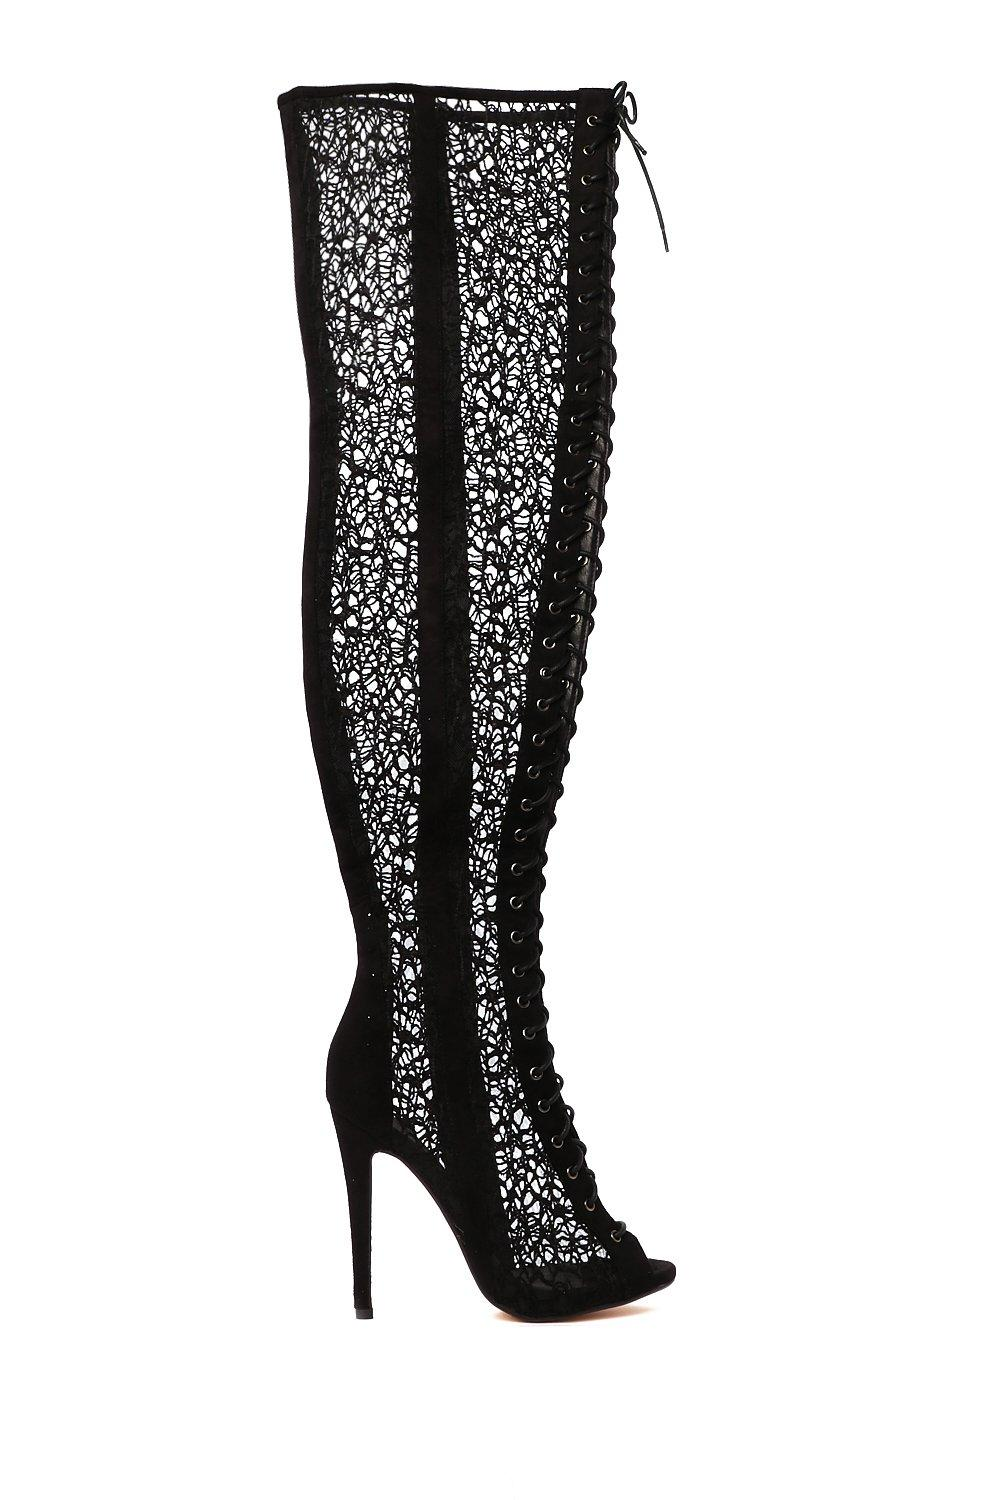 7684763cc6 Lace Face Facts Thigh-High Boot | Shop Clothes at Nasty Gal!